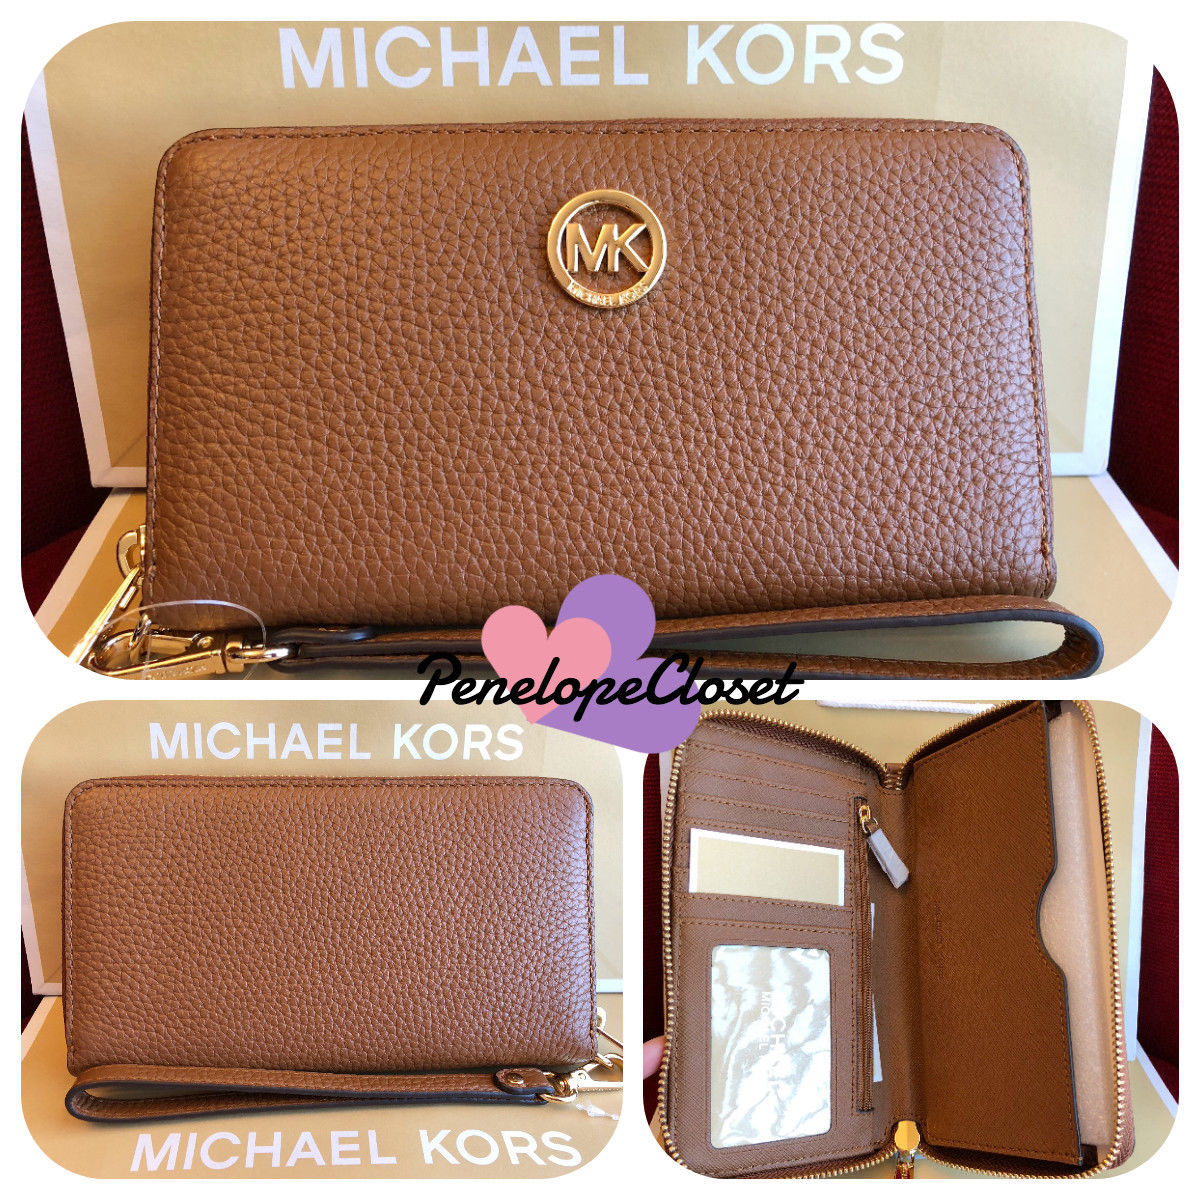 f8553964efa0 S l1600. S l1600. Previous. NWT MICHAEL KORS LEATHER FULTON LG FLAT MF PHONE  CASE WALLET IN LUGGAGE